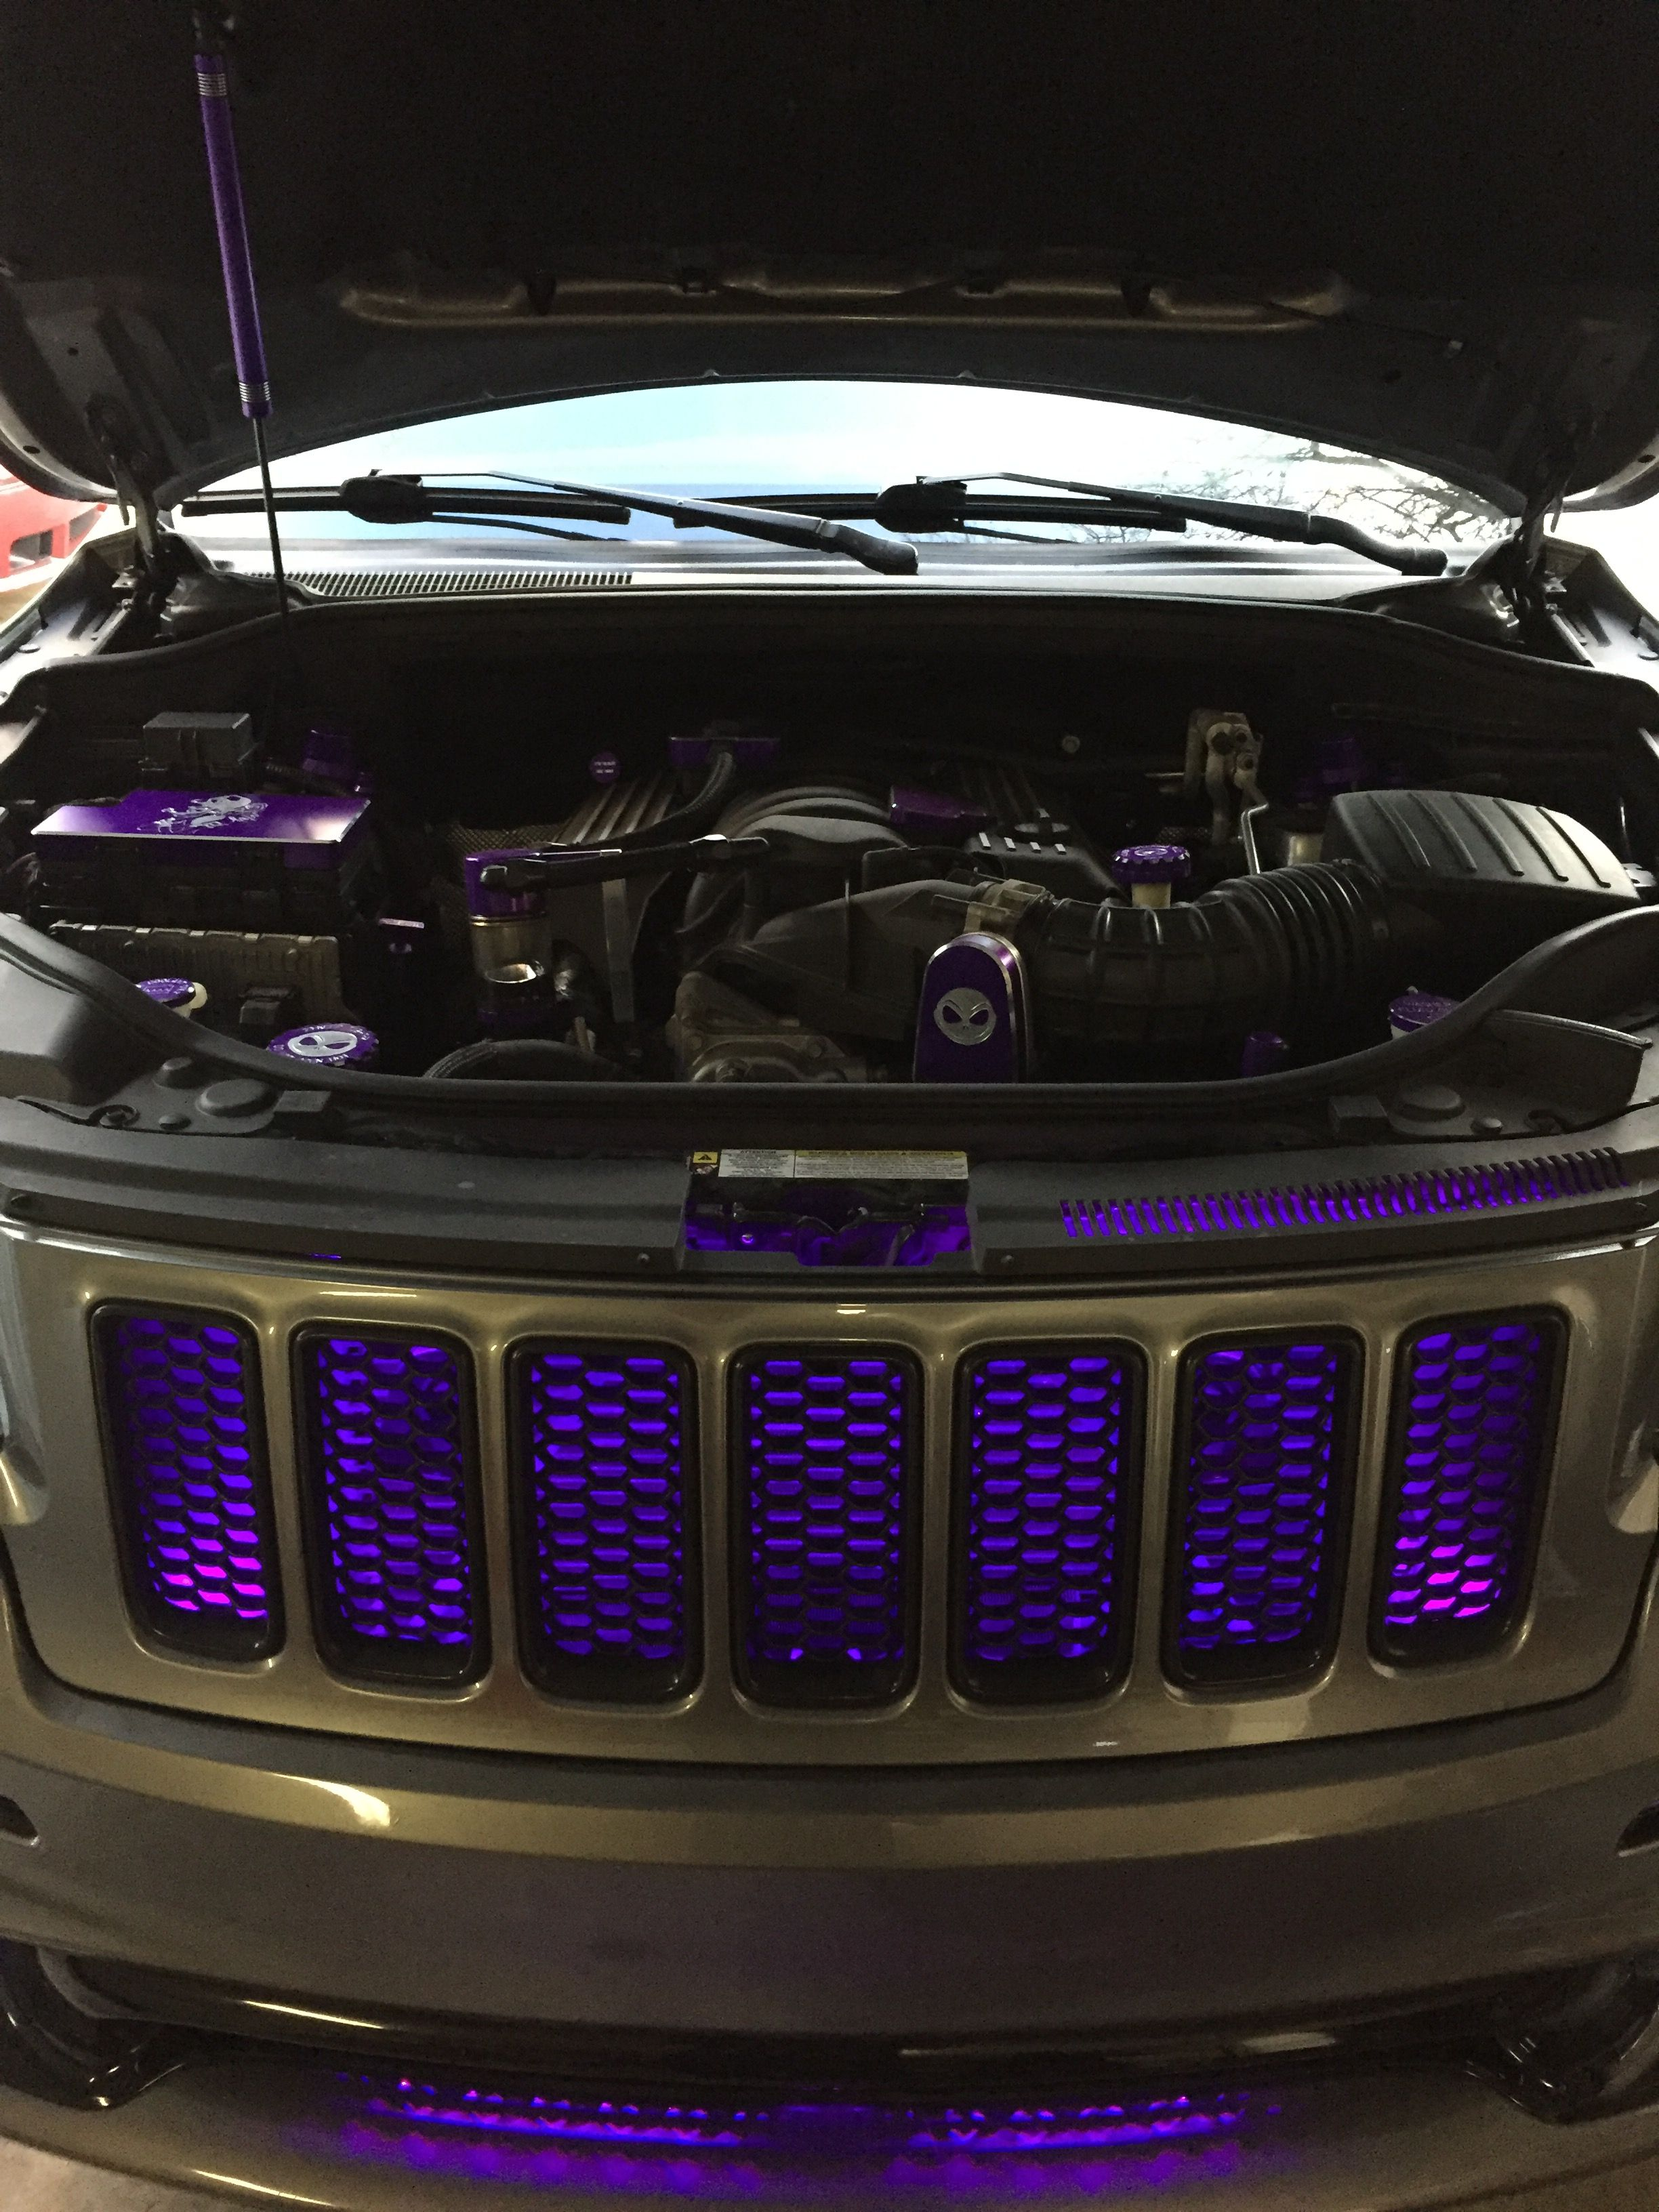 hight resolution of 2012 jeep grand cherokee srt8 graphite with purple grill lights and purple billet technology under hood trim kit